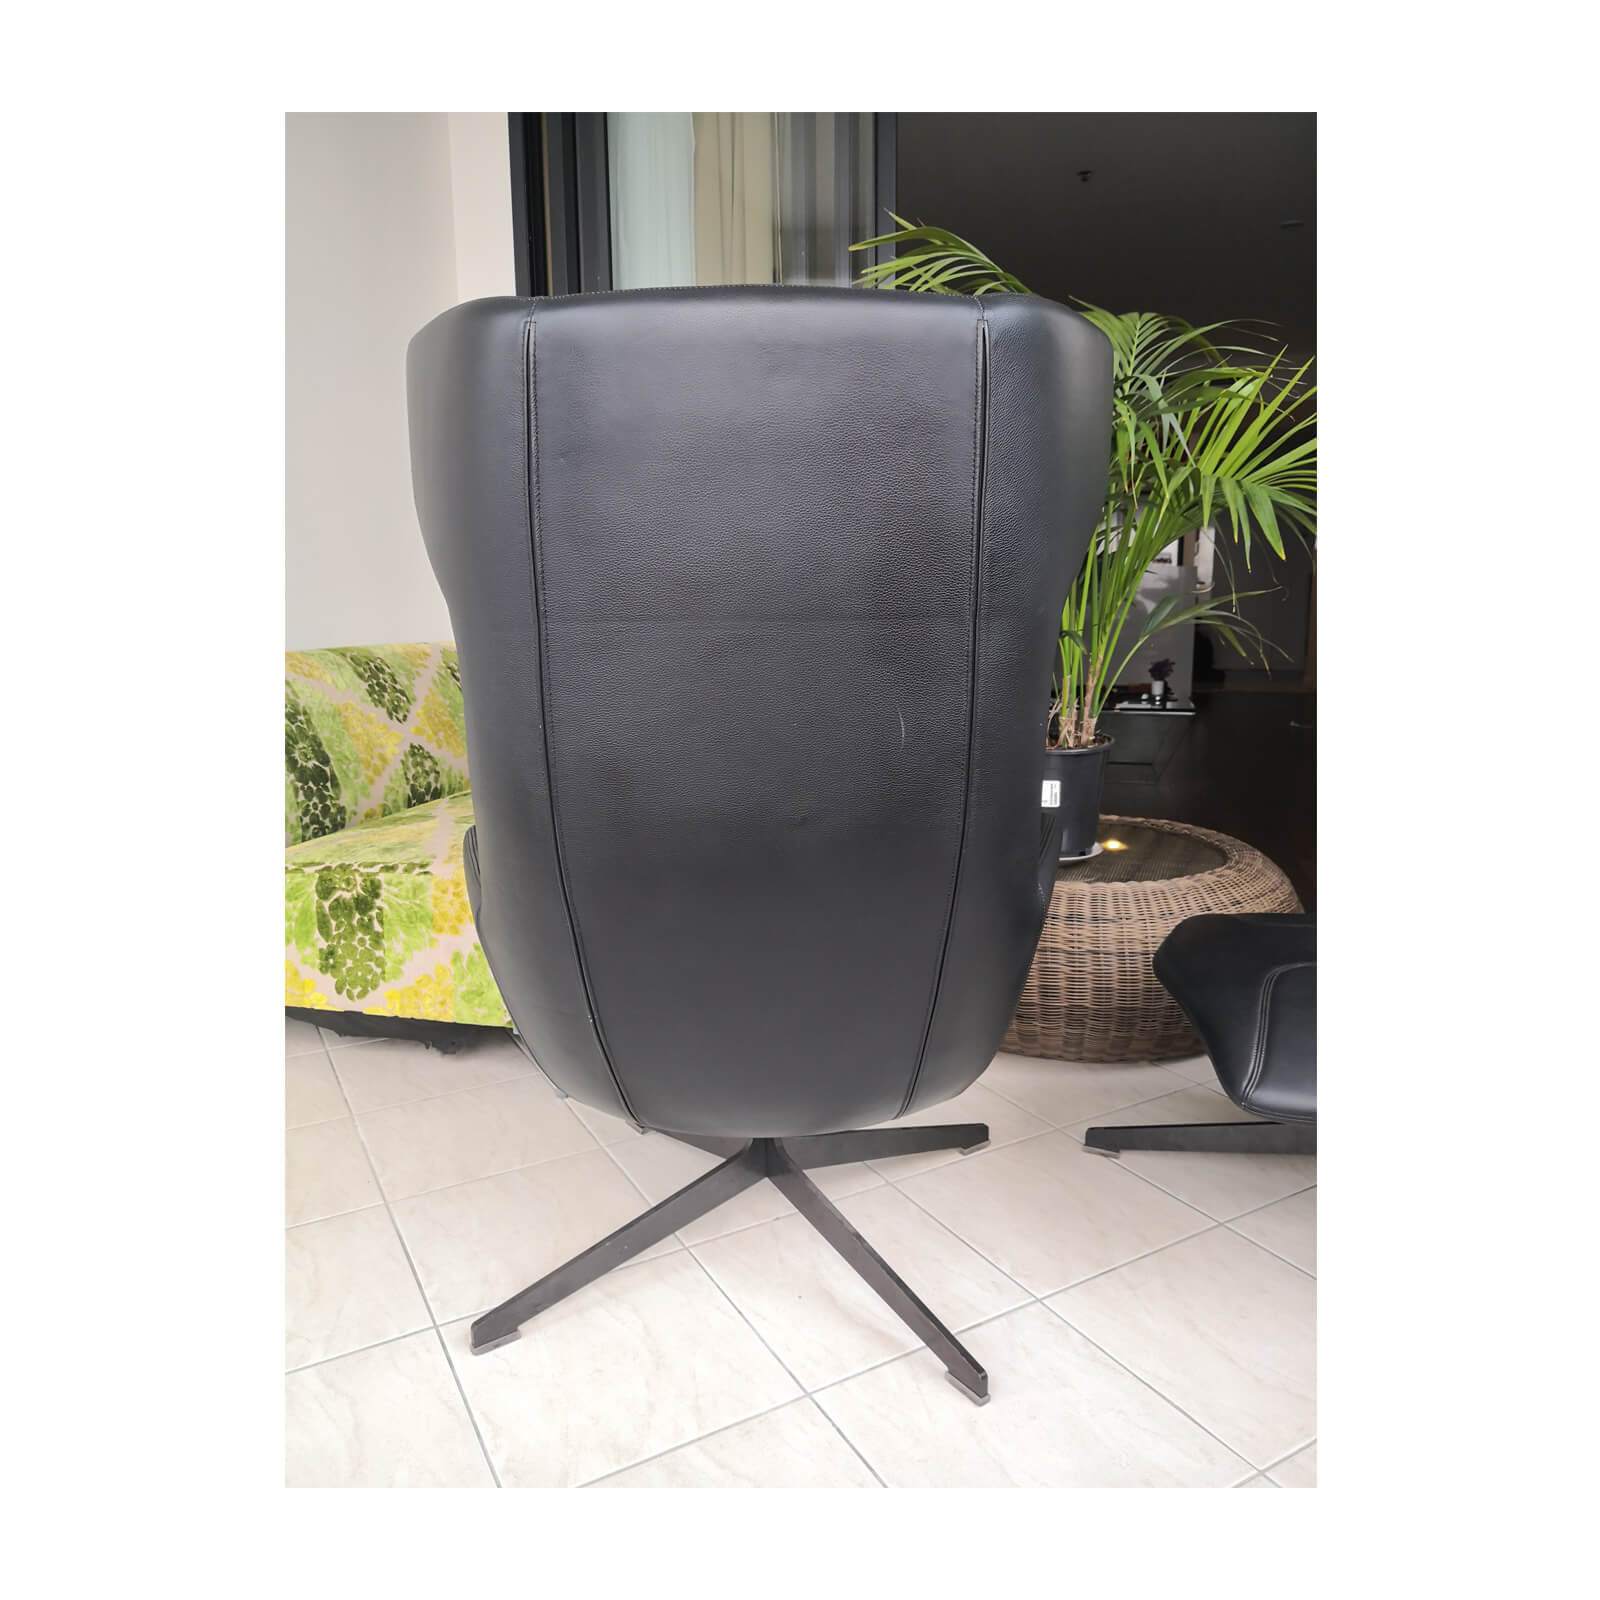 Two Design Lovers Moroso Take a Line for a Walk black swivel chair with footstool 5